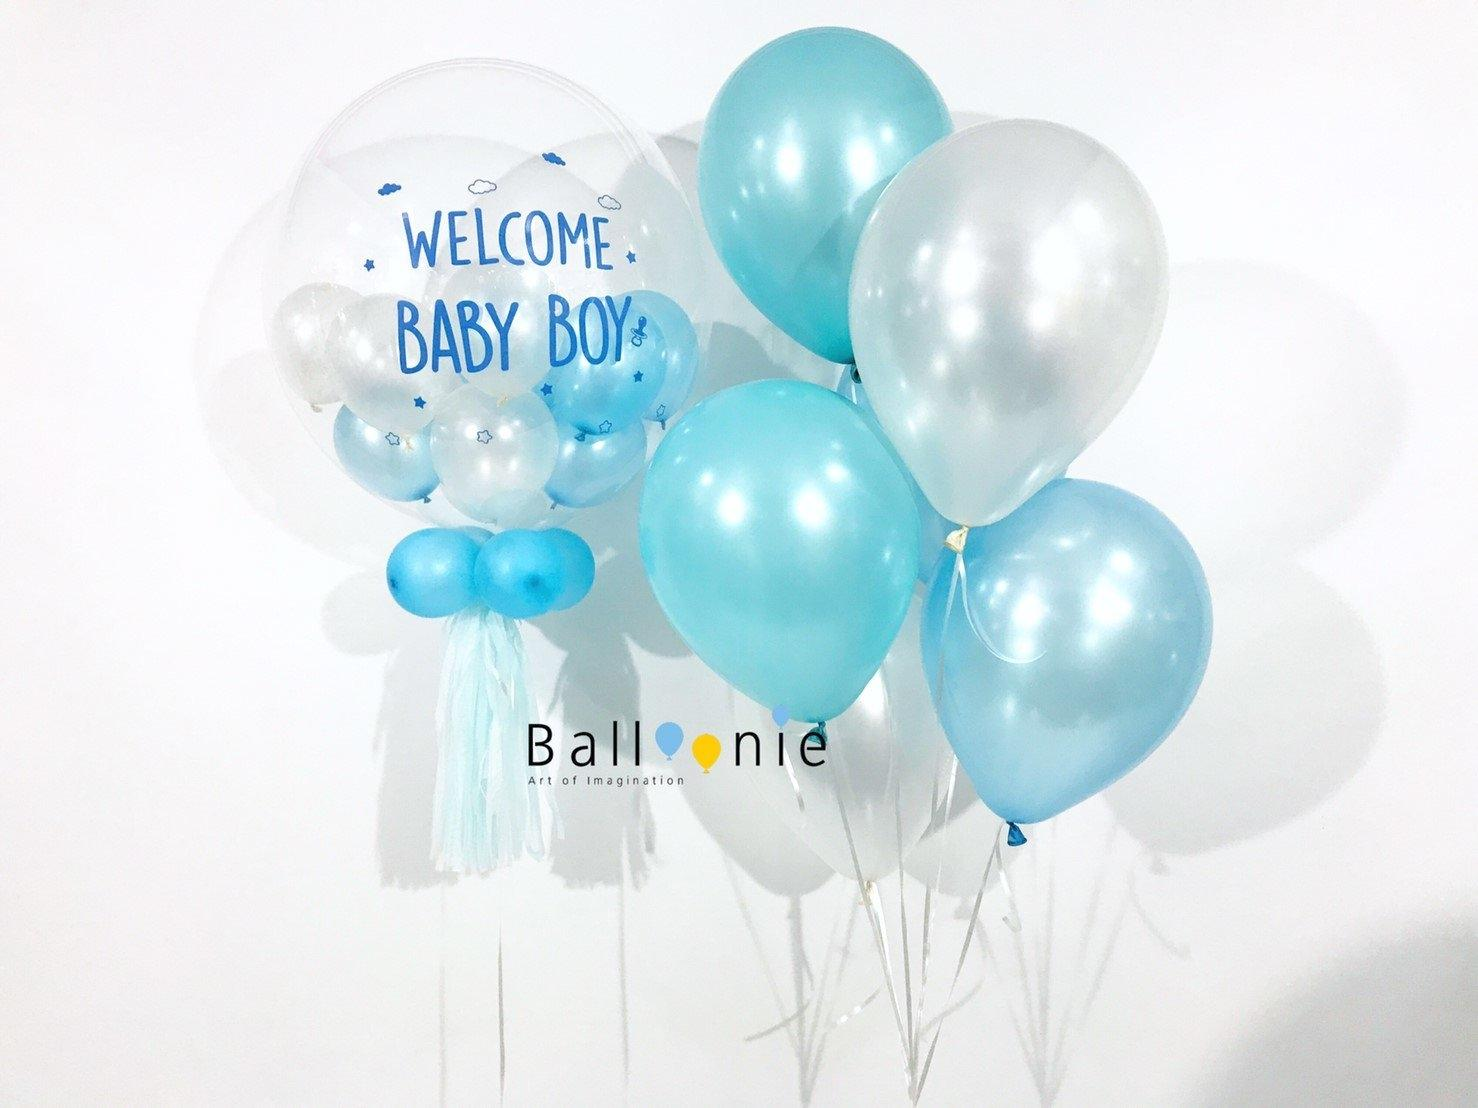 Set 3 welcome baby boy